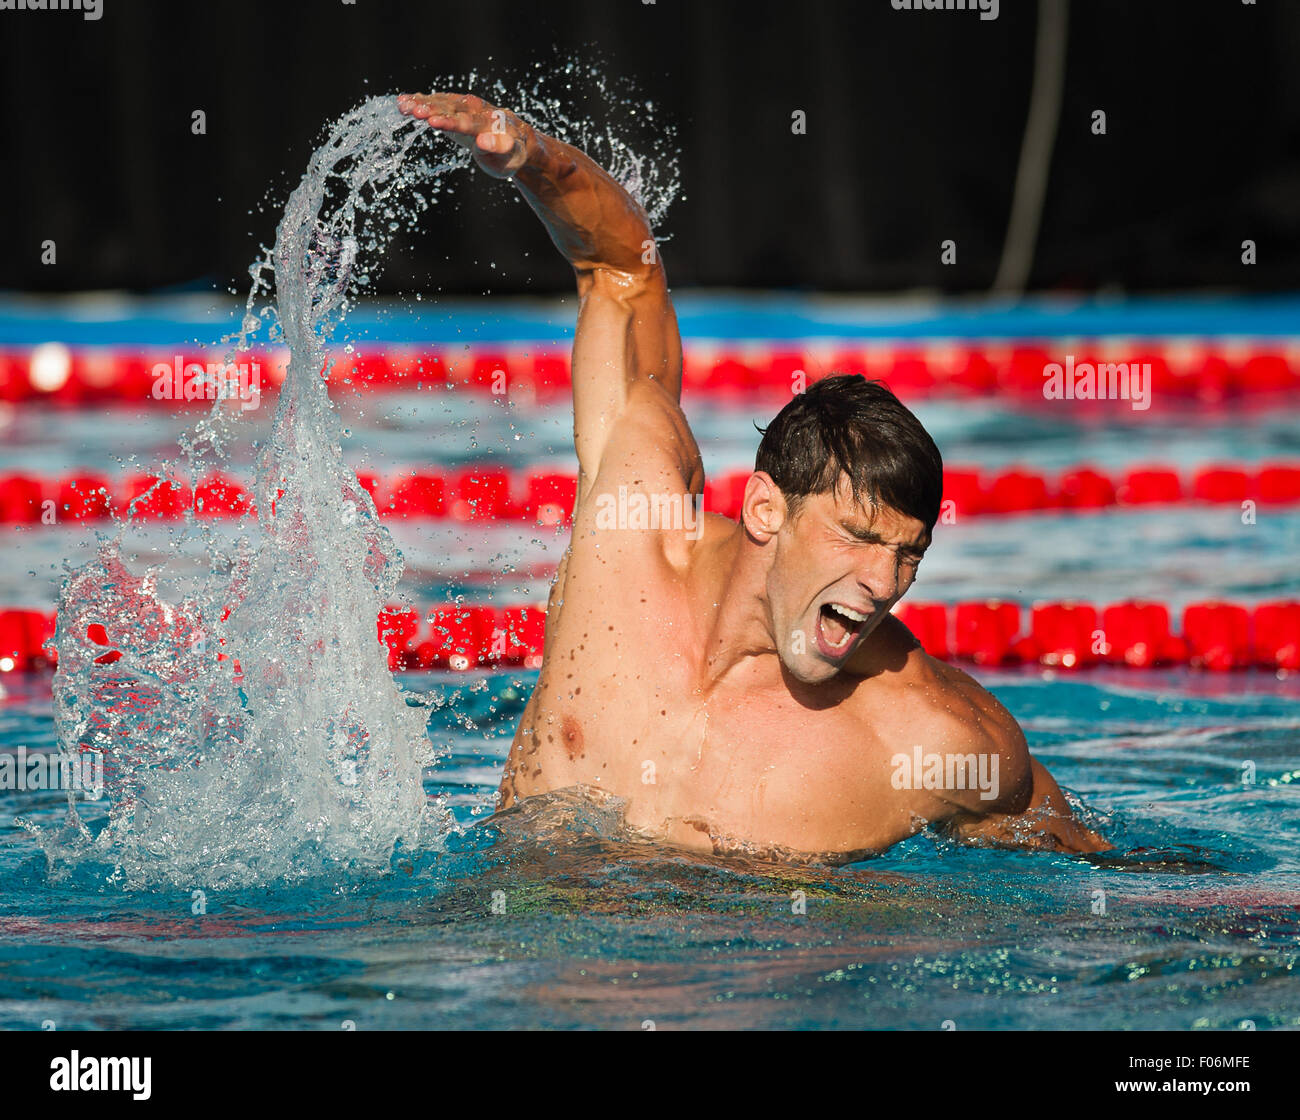 Michael Phelps reacts after winning the Final of the 100m Butterfly during the Phillips 66 National Swim Championships - Stock Image